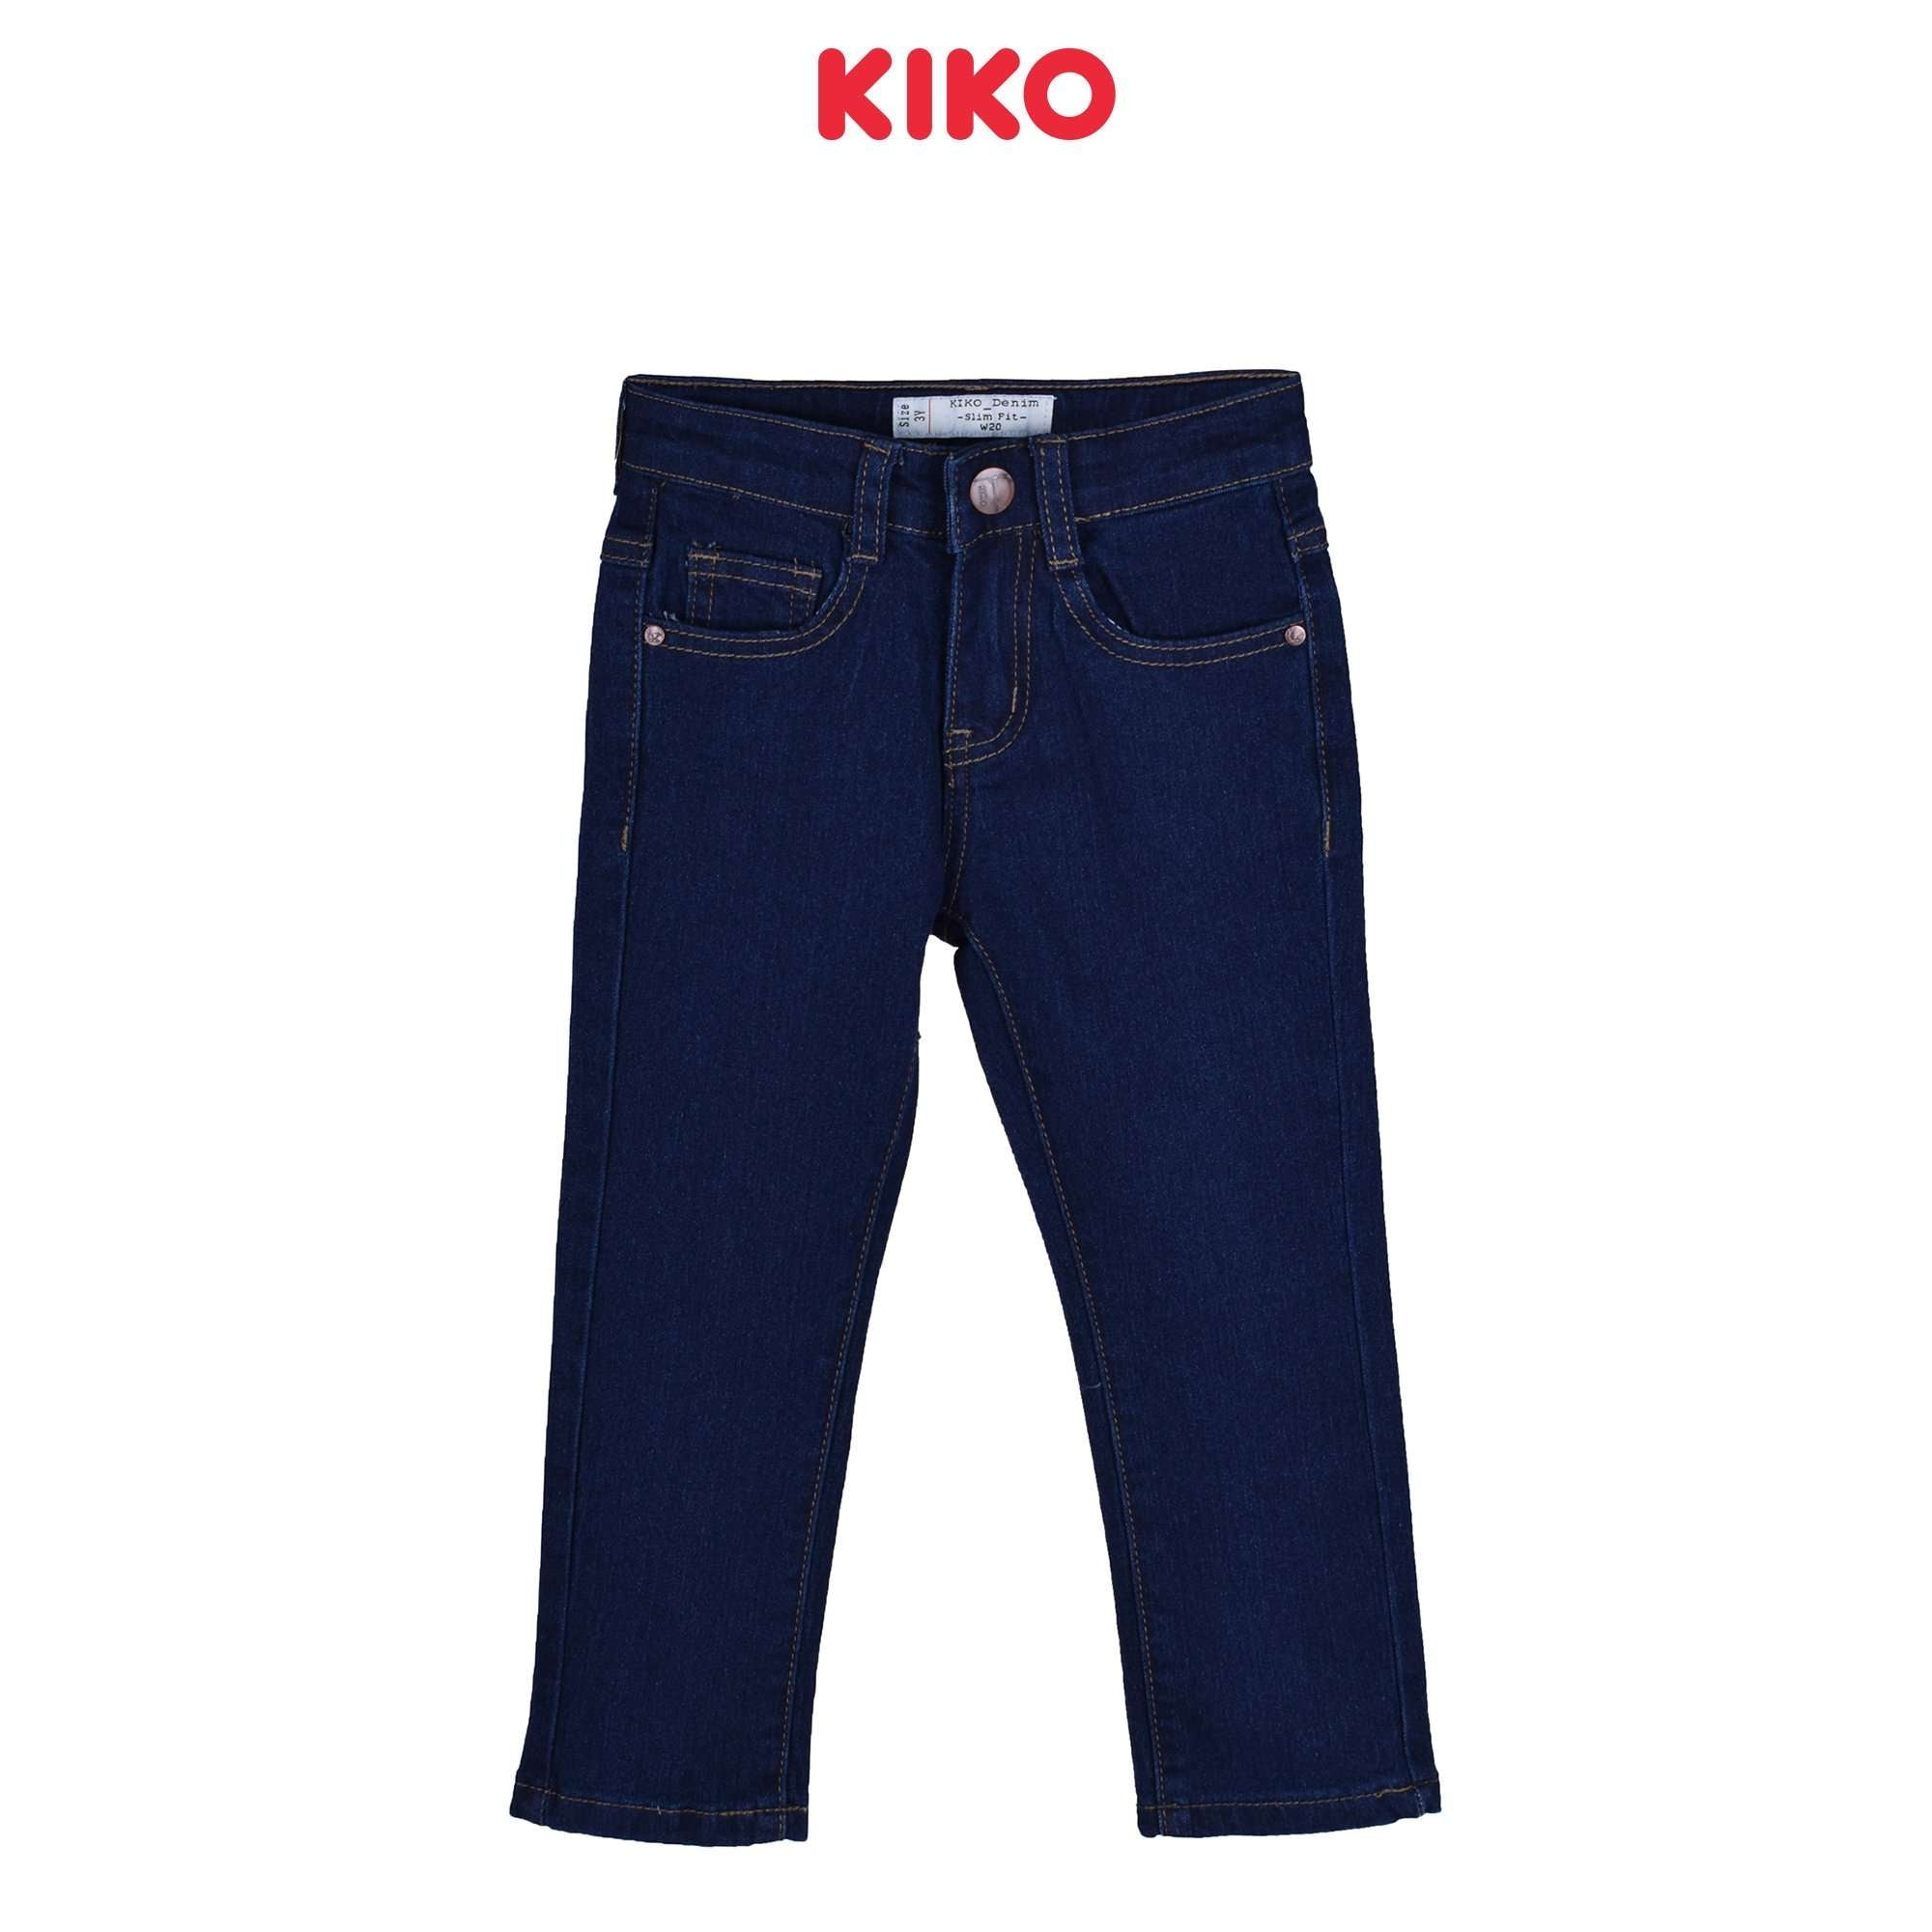 KIKO Girl Jeans Slim Fit 135050-212 : Buy KIKO online at CMG.MY